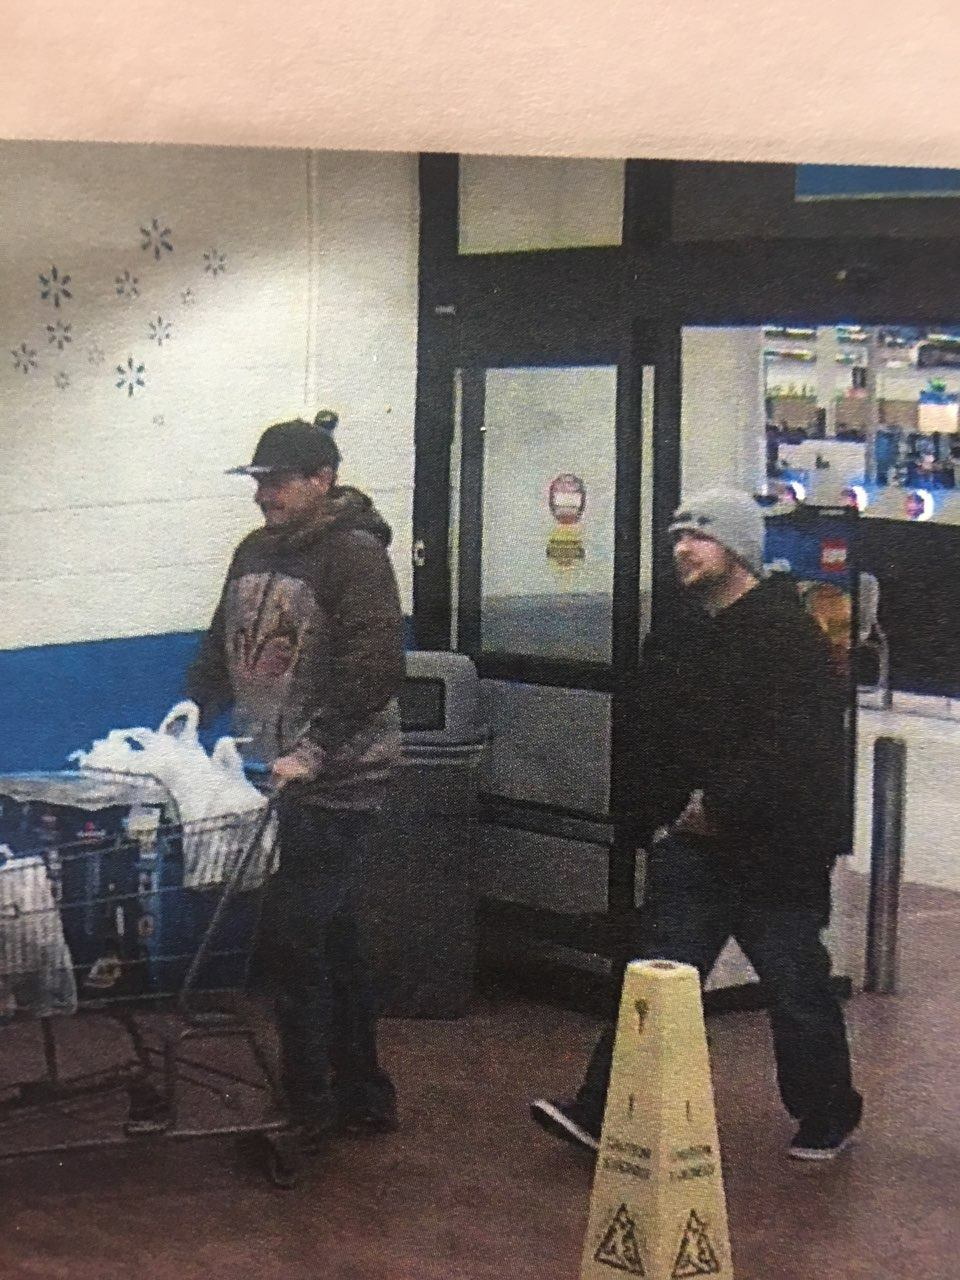 If you recognize either of these people, call Crime Stoppers at 918-596-COPS. (Tulsa Police Department)